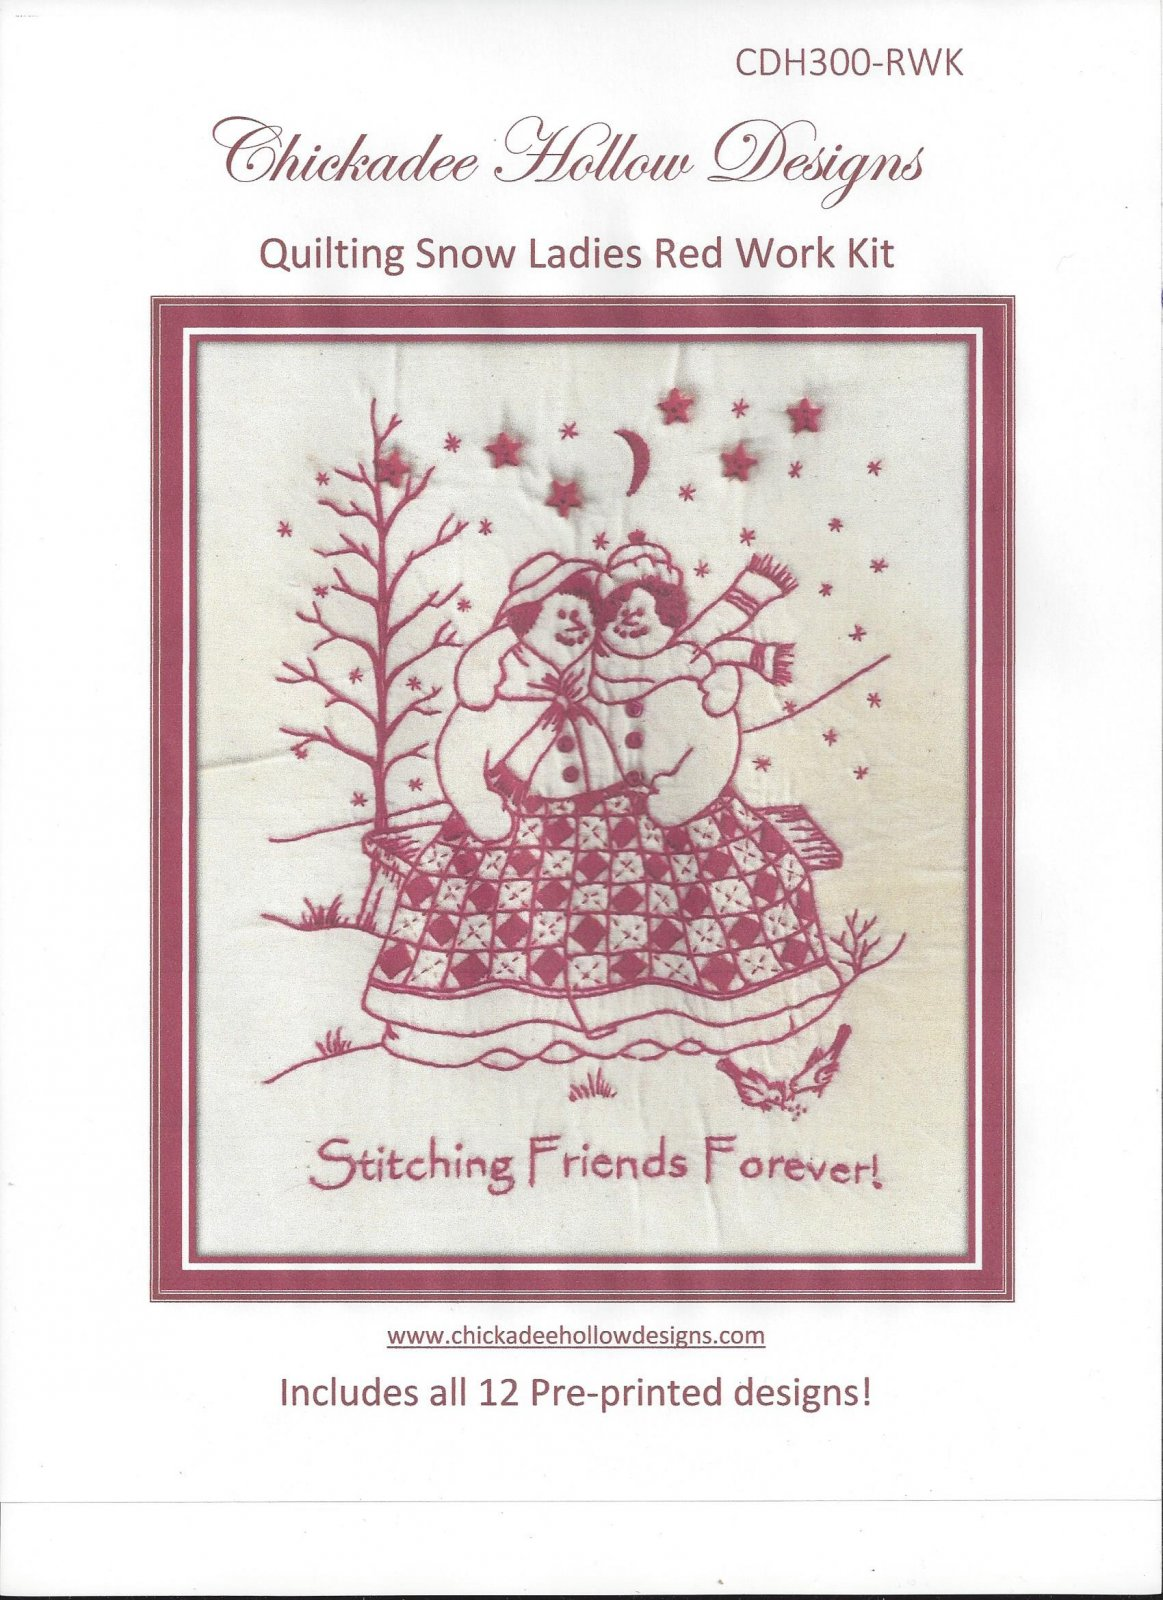 The Quilting Snowladies Complete Set Redwork.